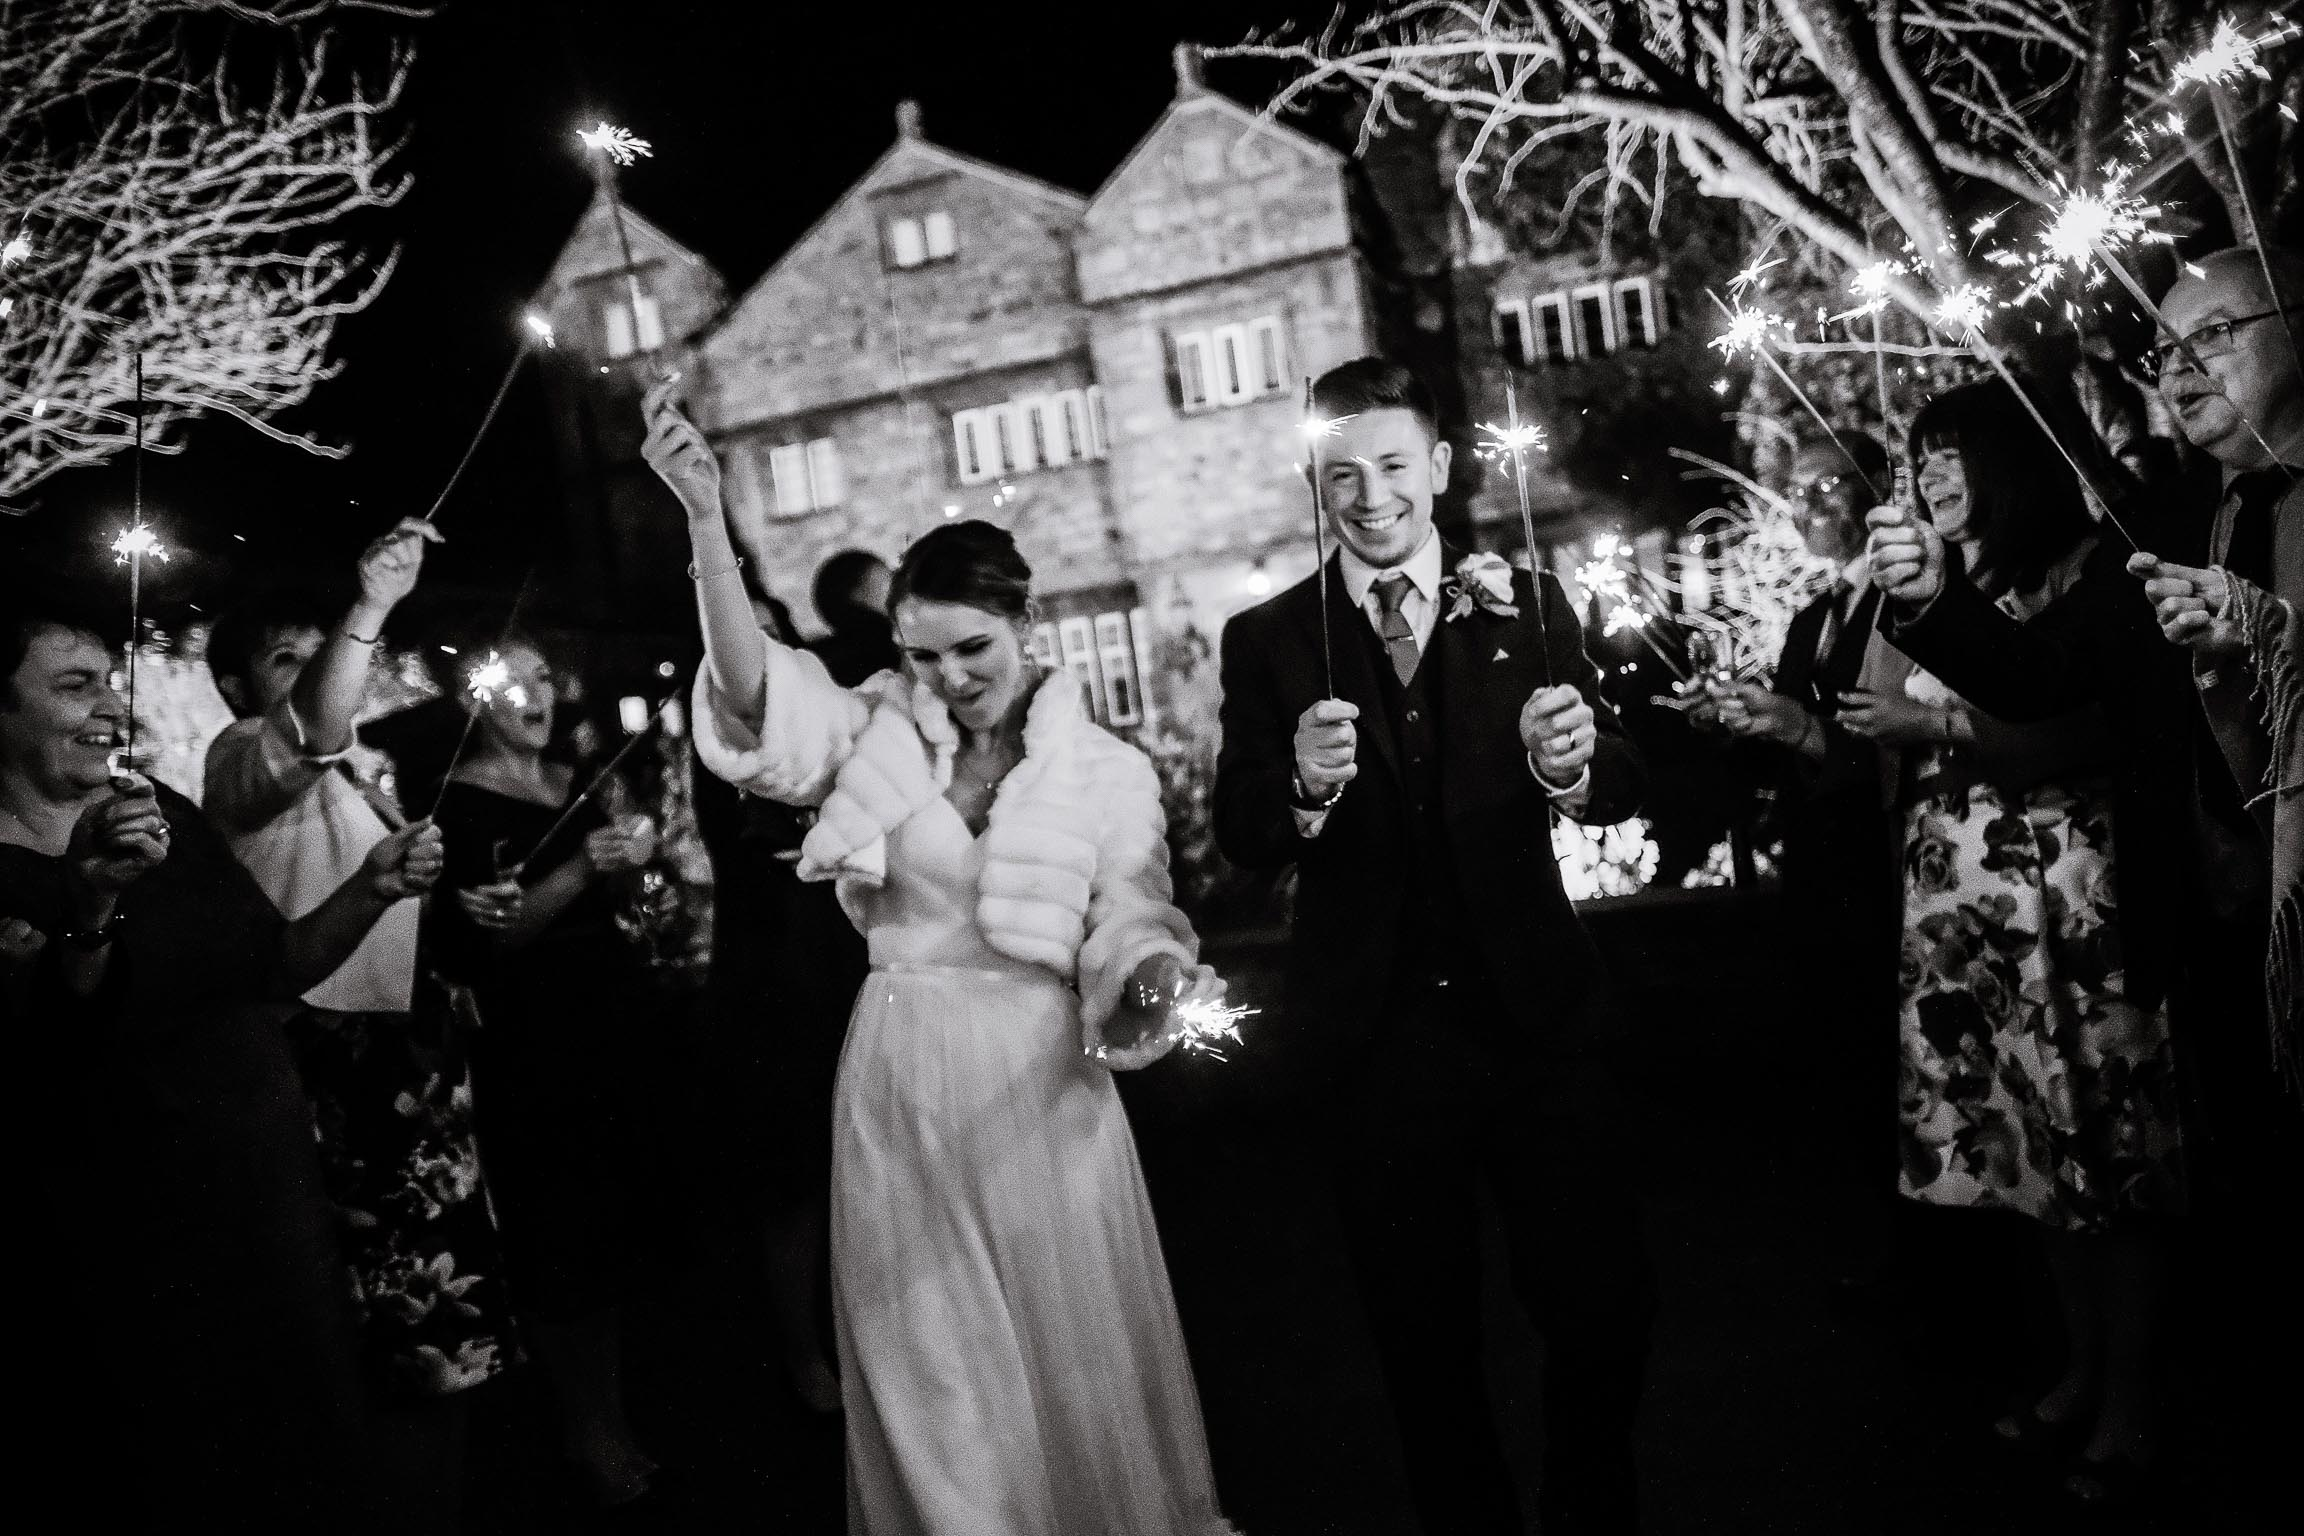 Stirk house clitheroe lancashire wedding photographer covering a documentary photography style  (66 of 85).jpg